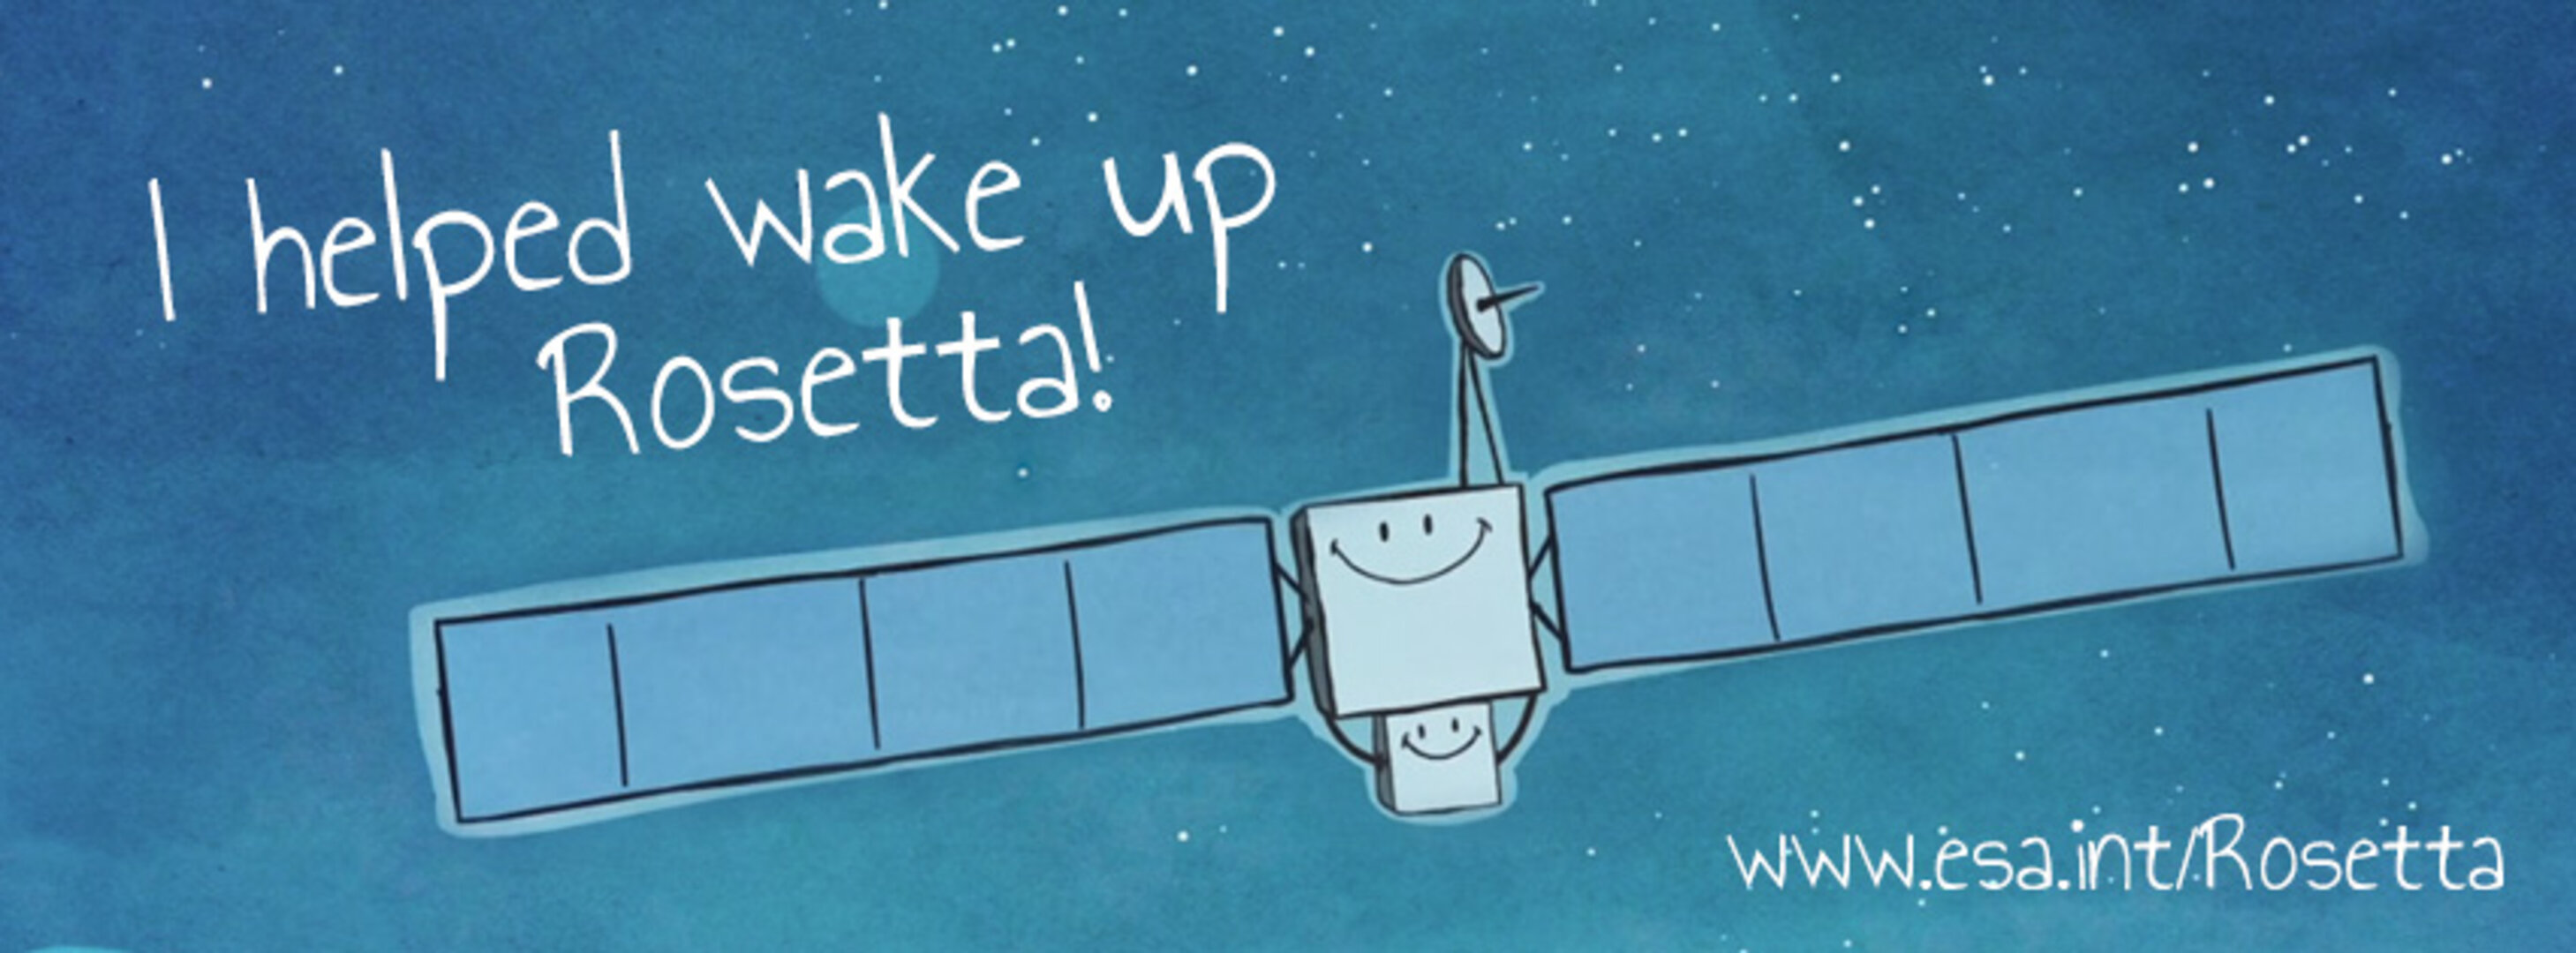 I helped wake up Rosetta!